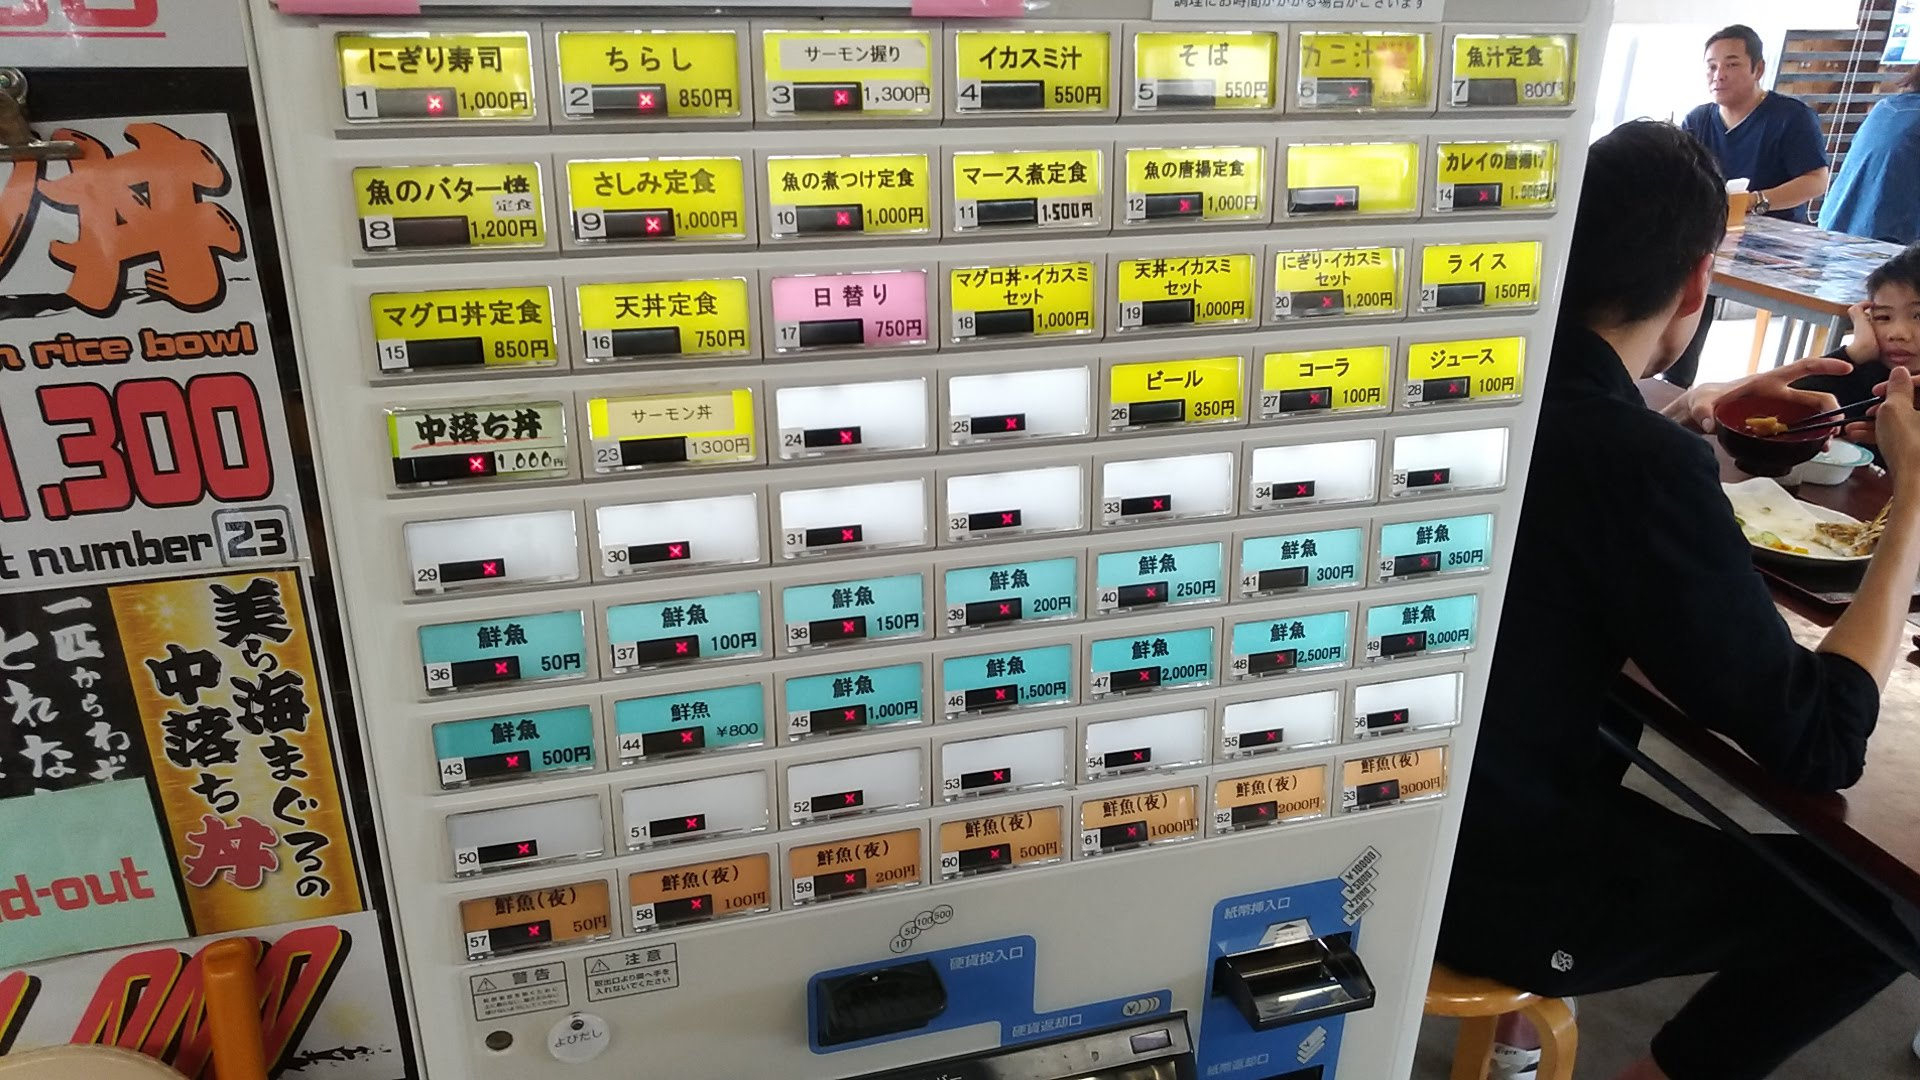 ticket machine of Nago fishing port fishery direct sales shop